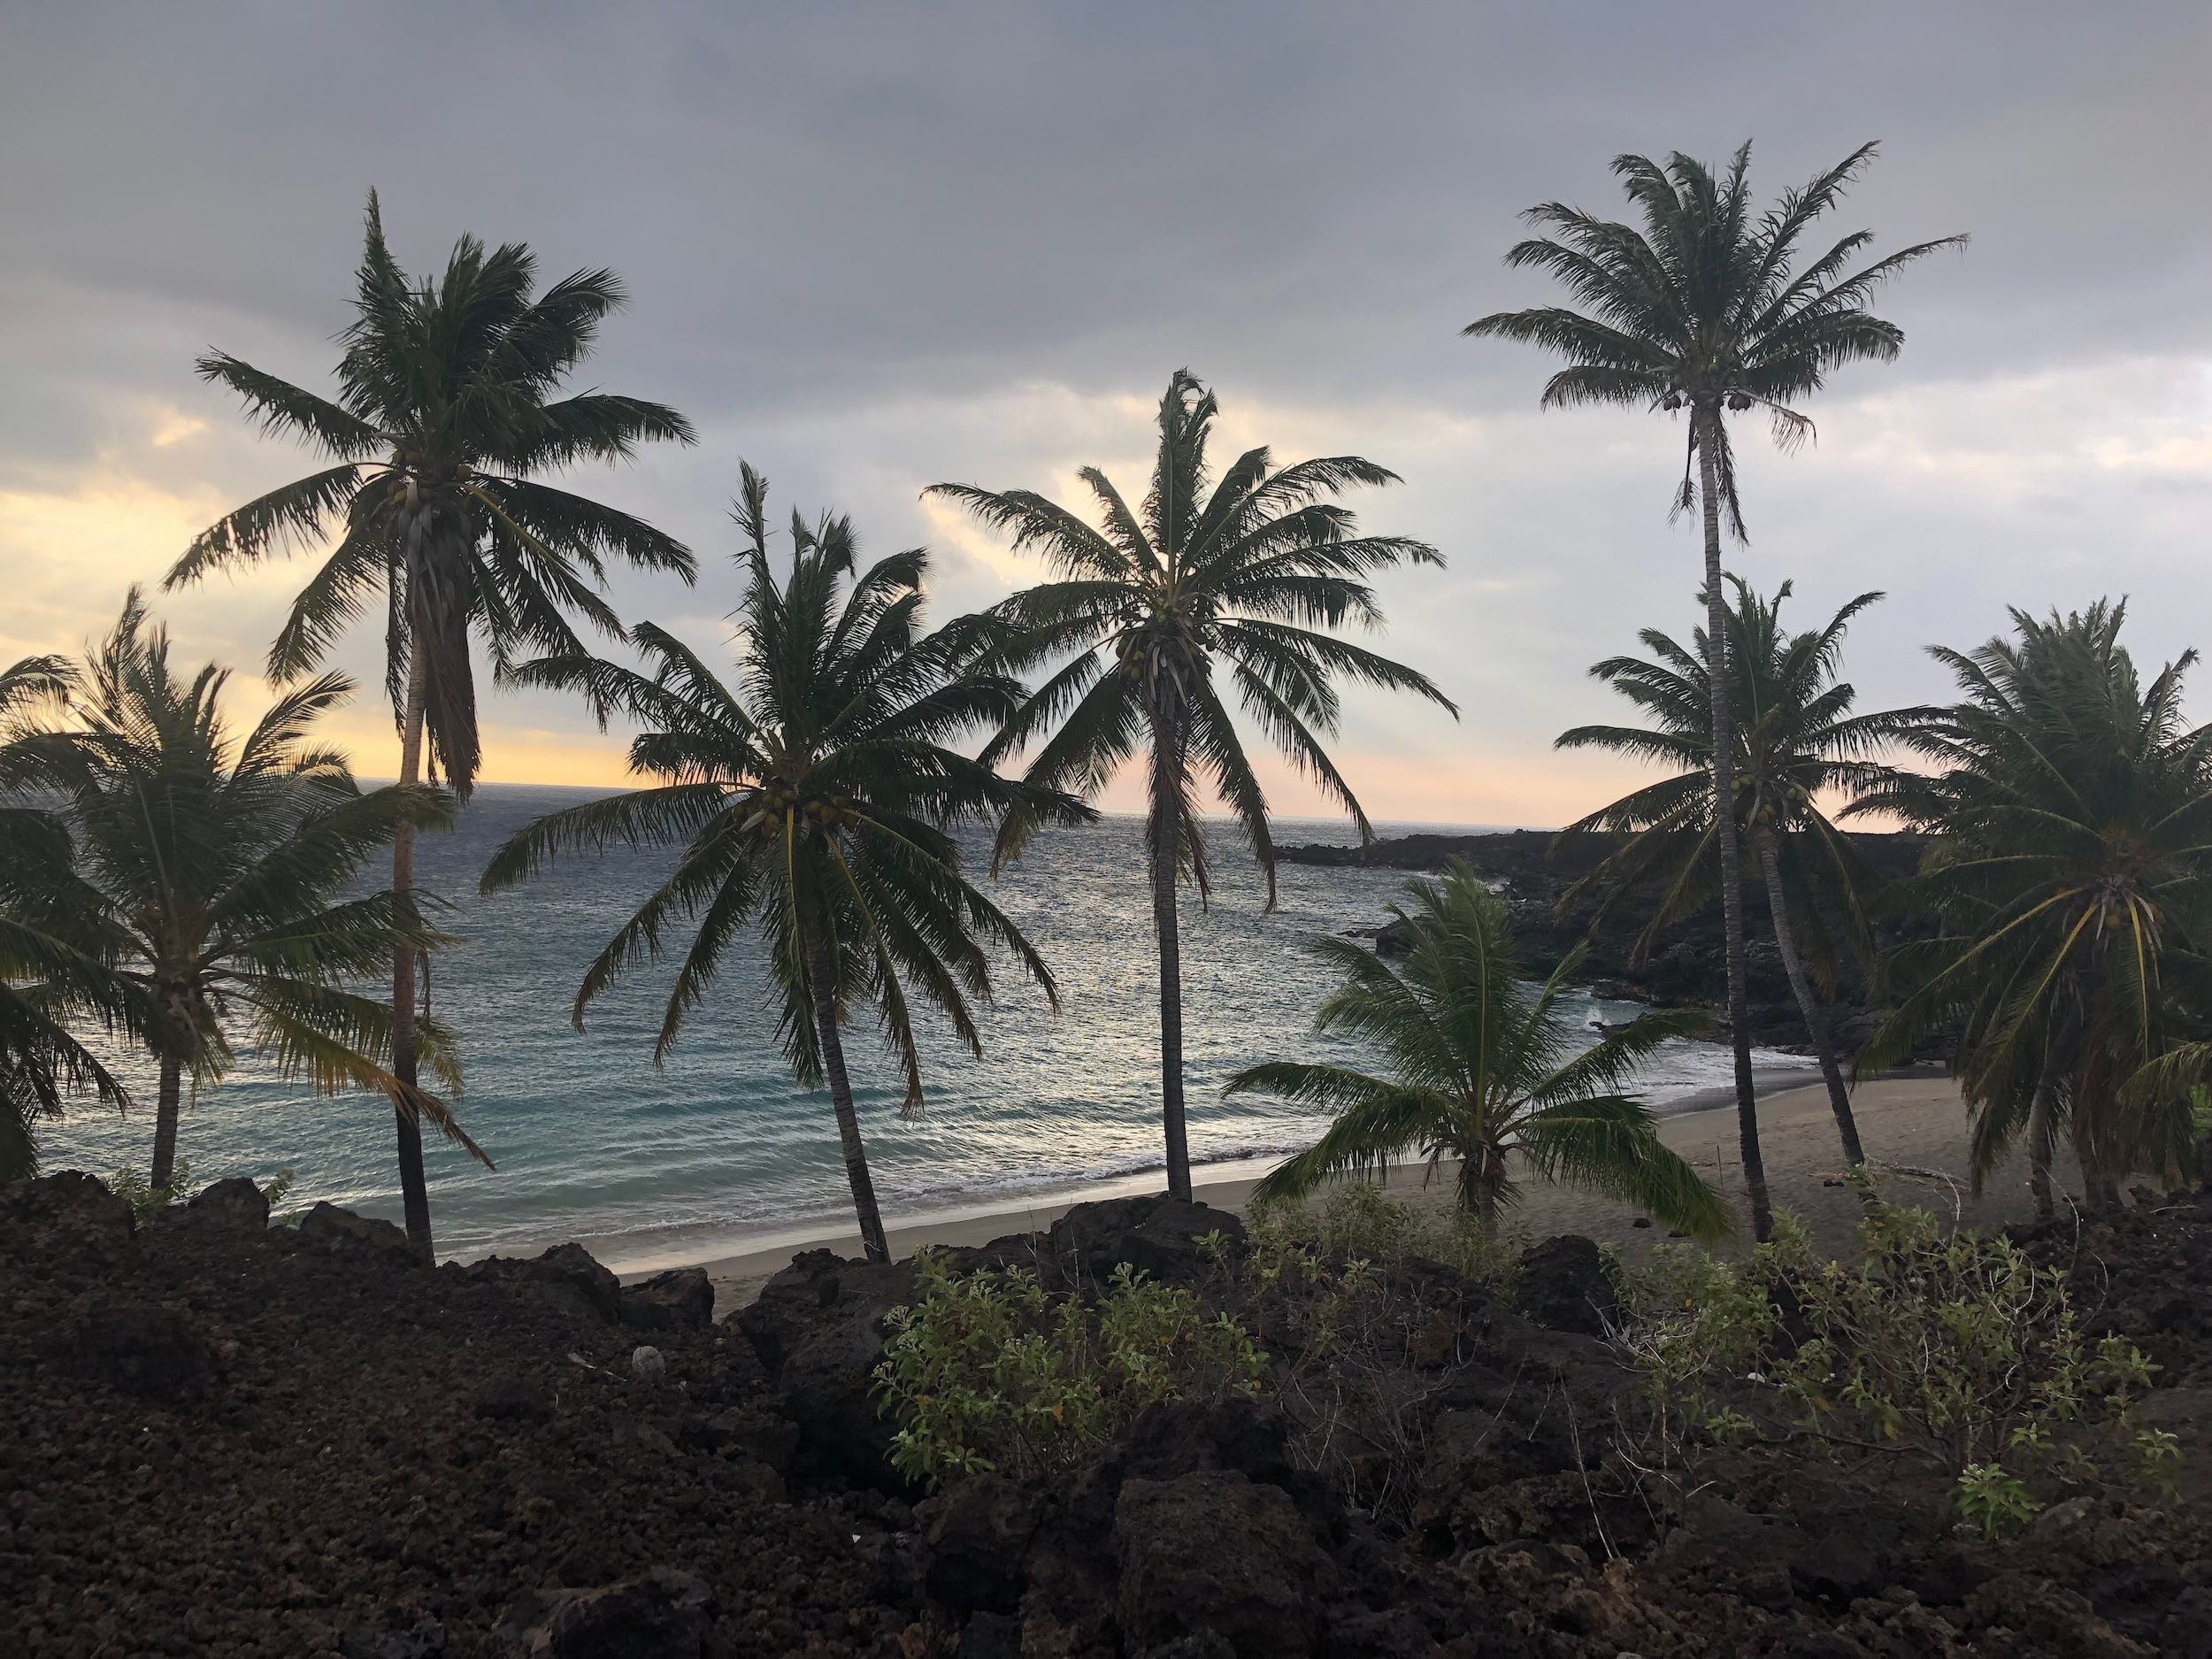 view of sunset at secret beach (Pohue Bay) in Ocean View, Hawaii.